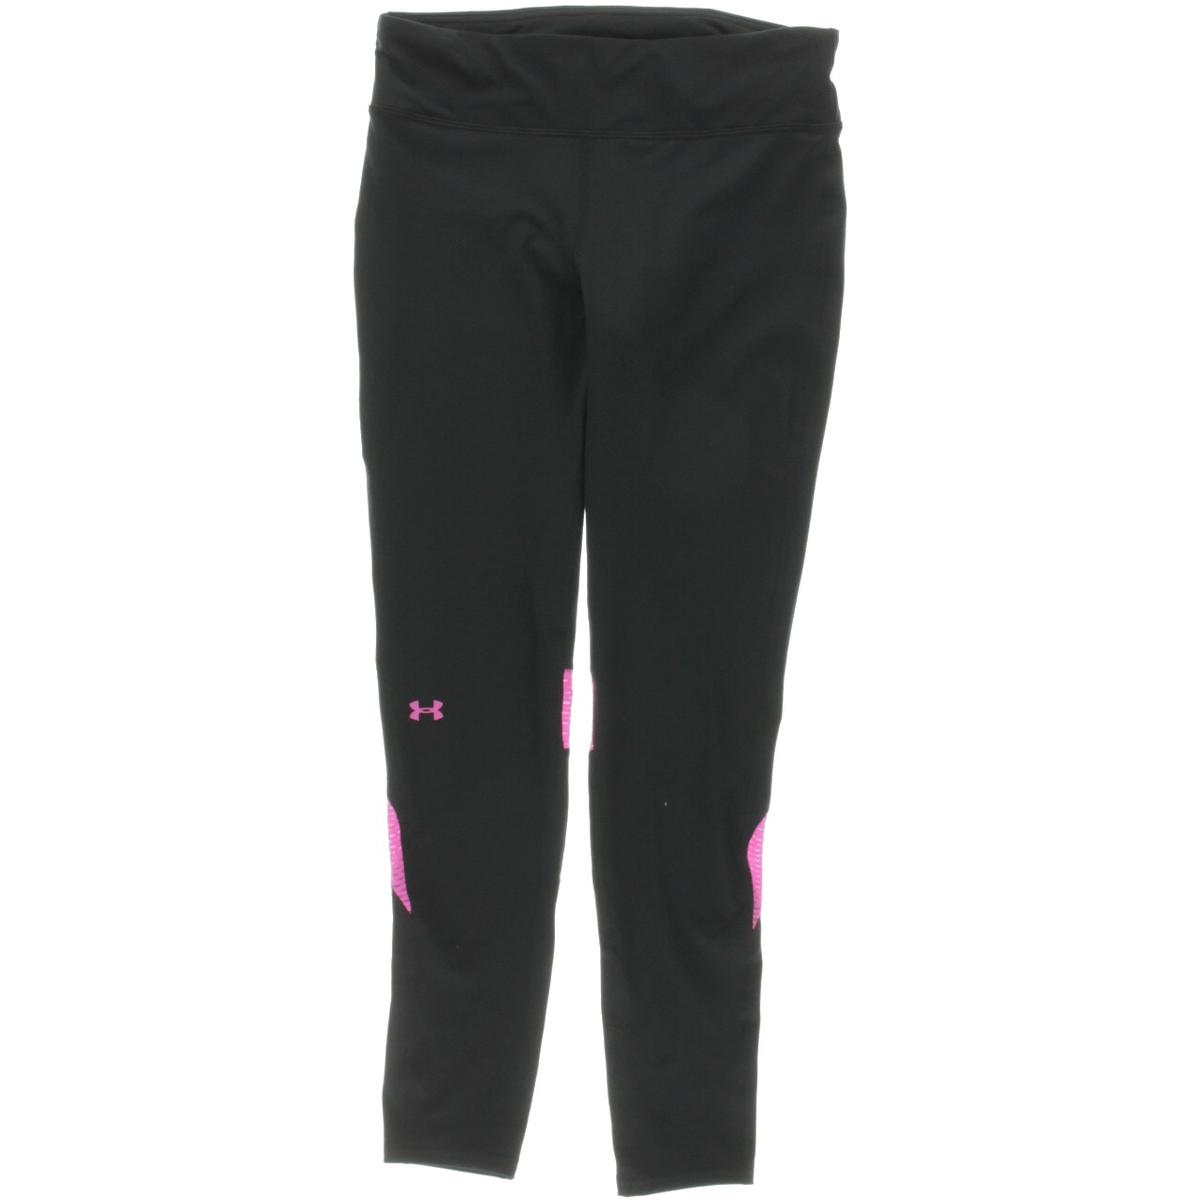 Awesome Under Armour HeatGear Armour Women39s Compression Shorts  AW15